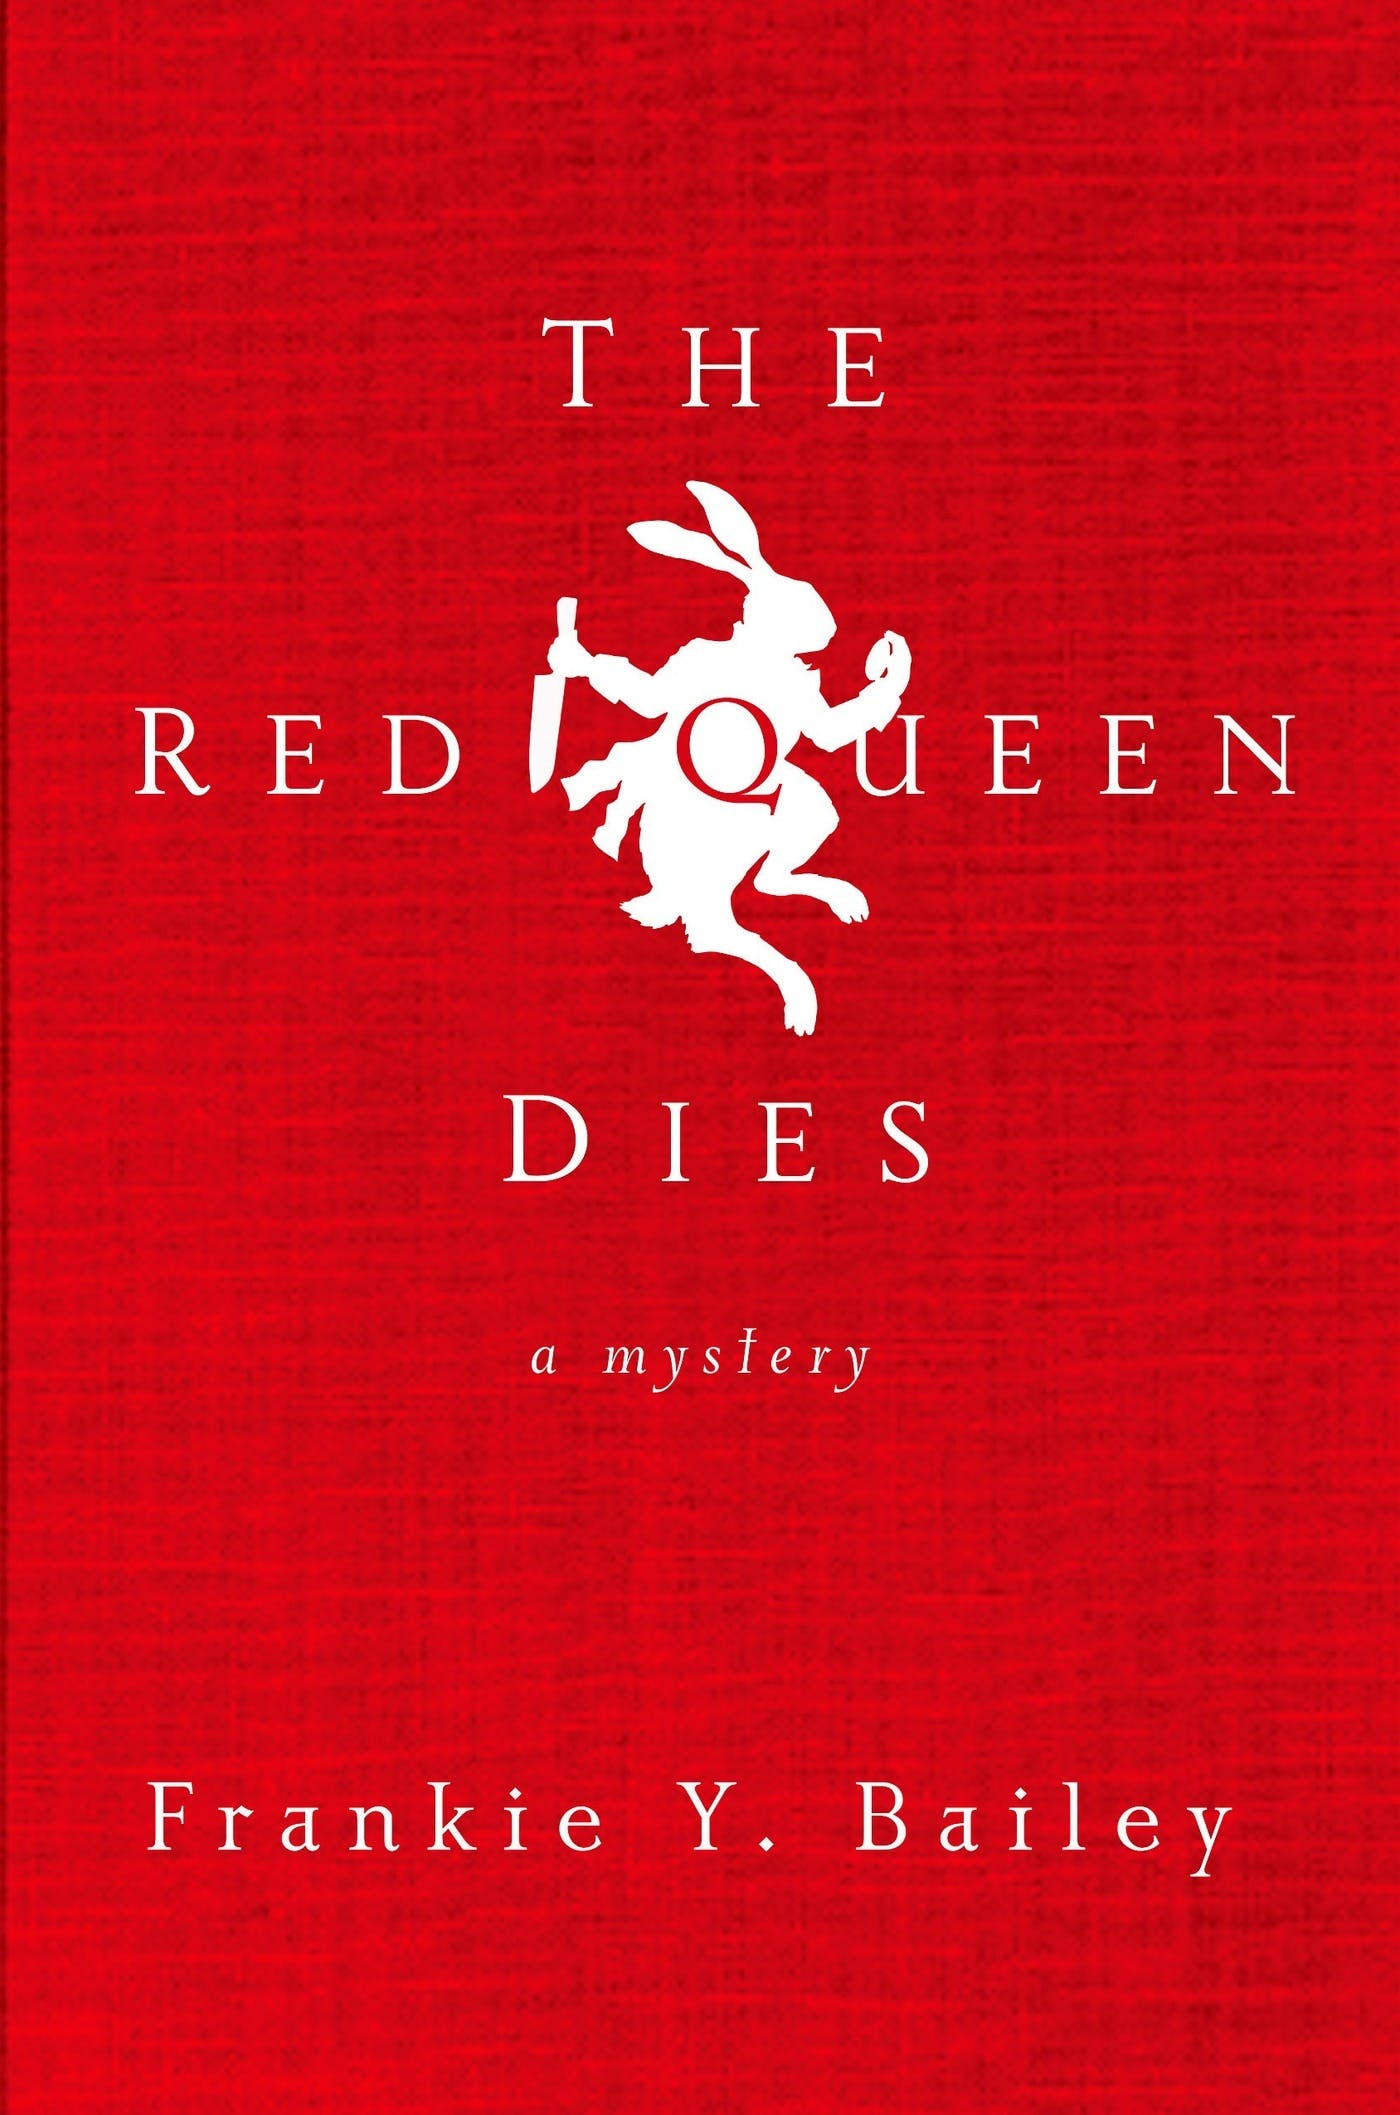 Image of The Red Queen Dies